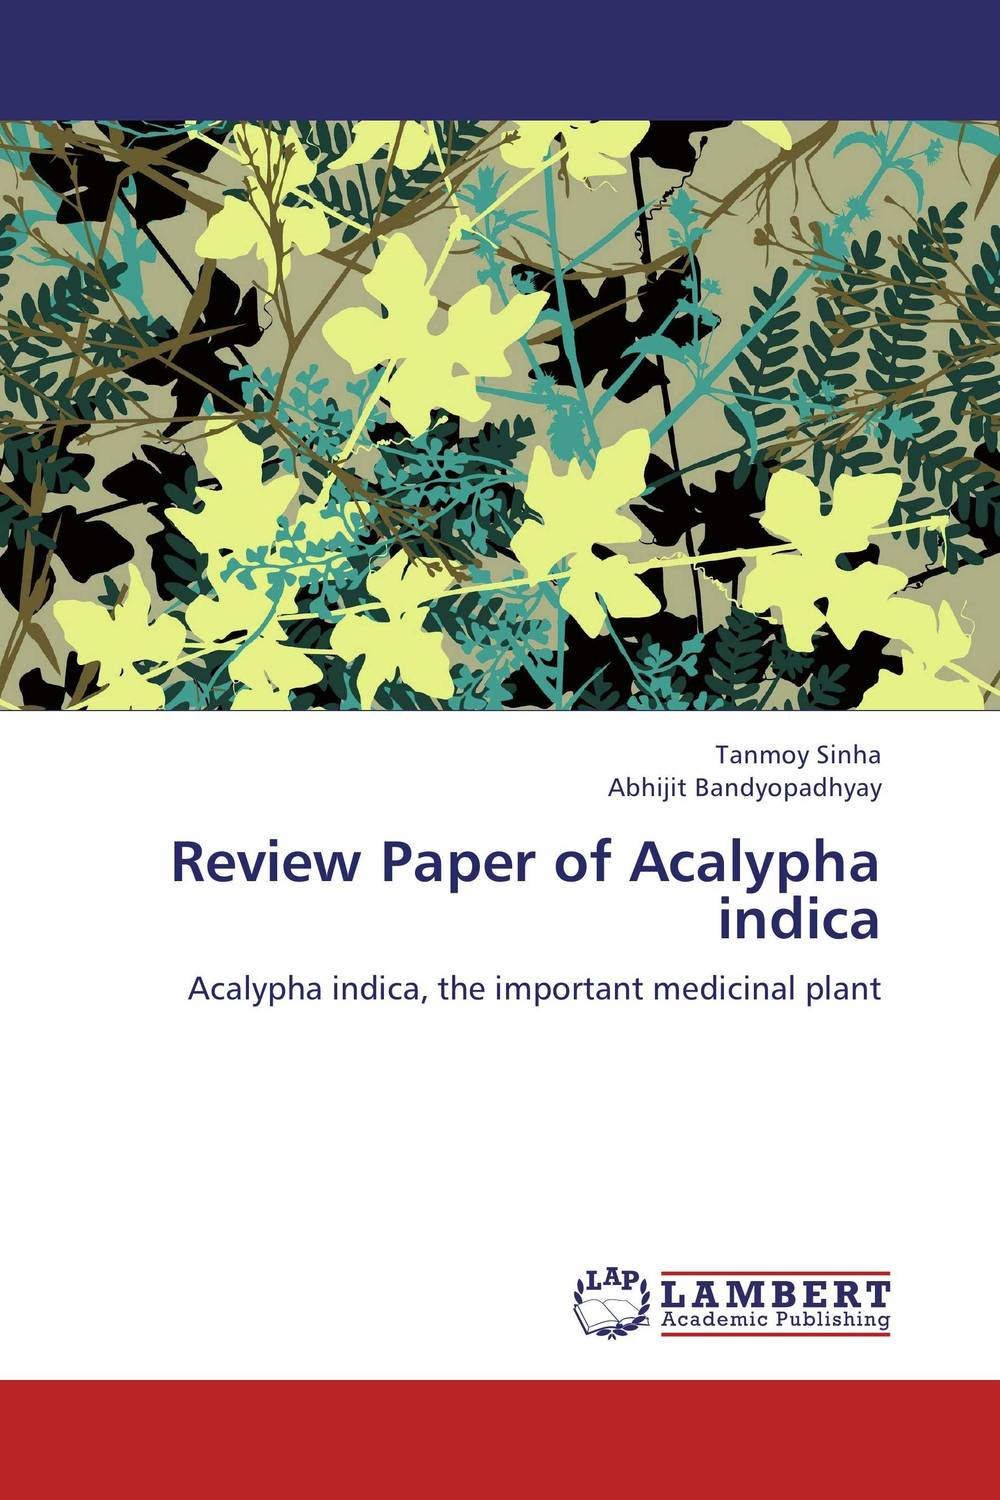 Review Paper of Acalypha indica effect of medicinal plant extracts on the viability of protoscoleces